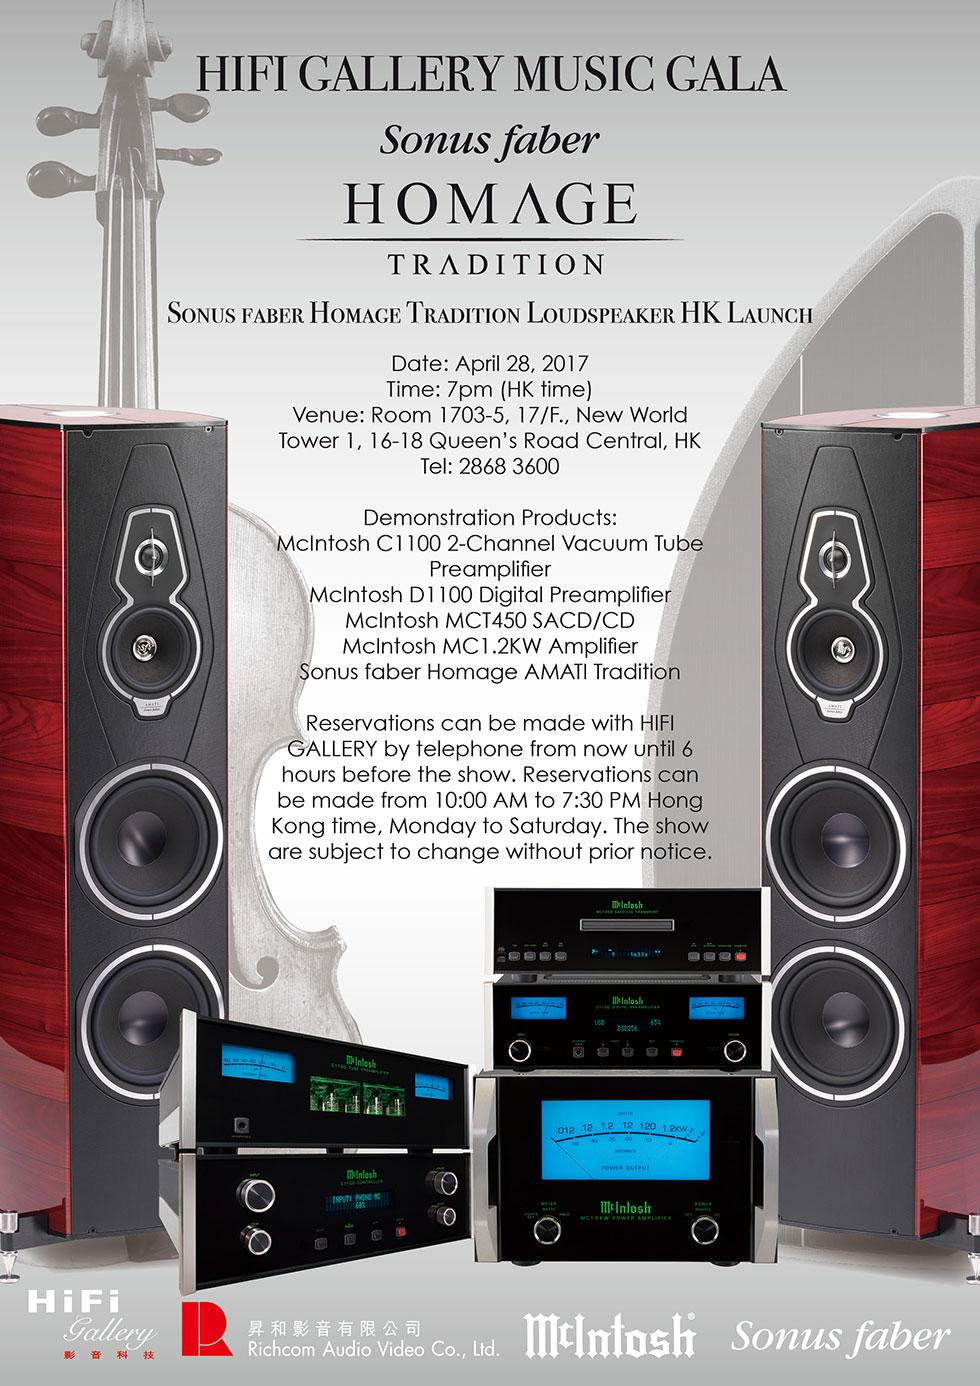 HiFi Gallery Music Gala (Sonus Faber Homage Tradition HK Launch)